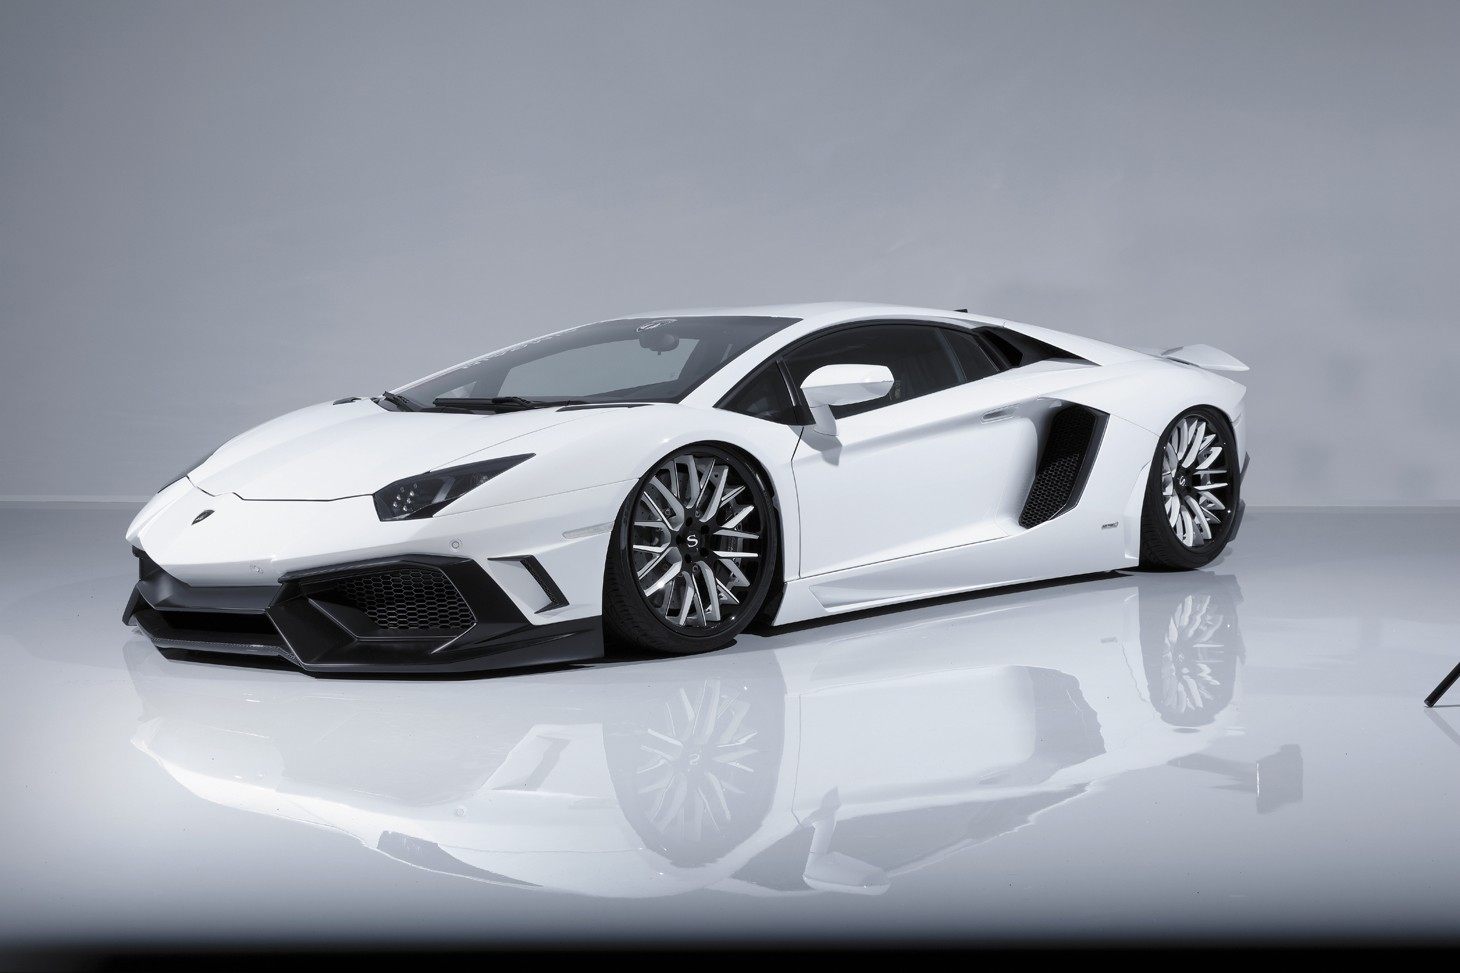 Aimgain Gt Lamborghini Aventador Is From Japan Autoevolution